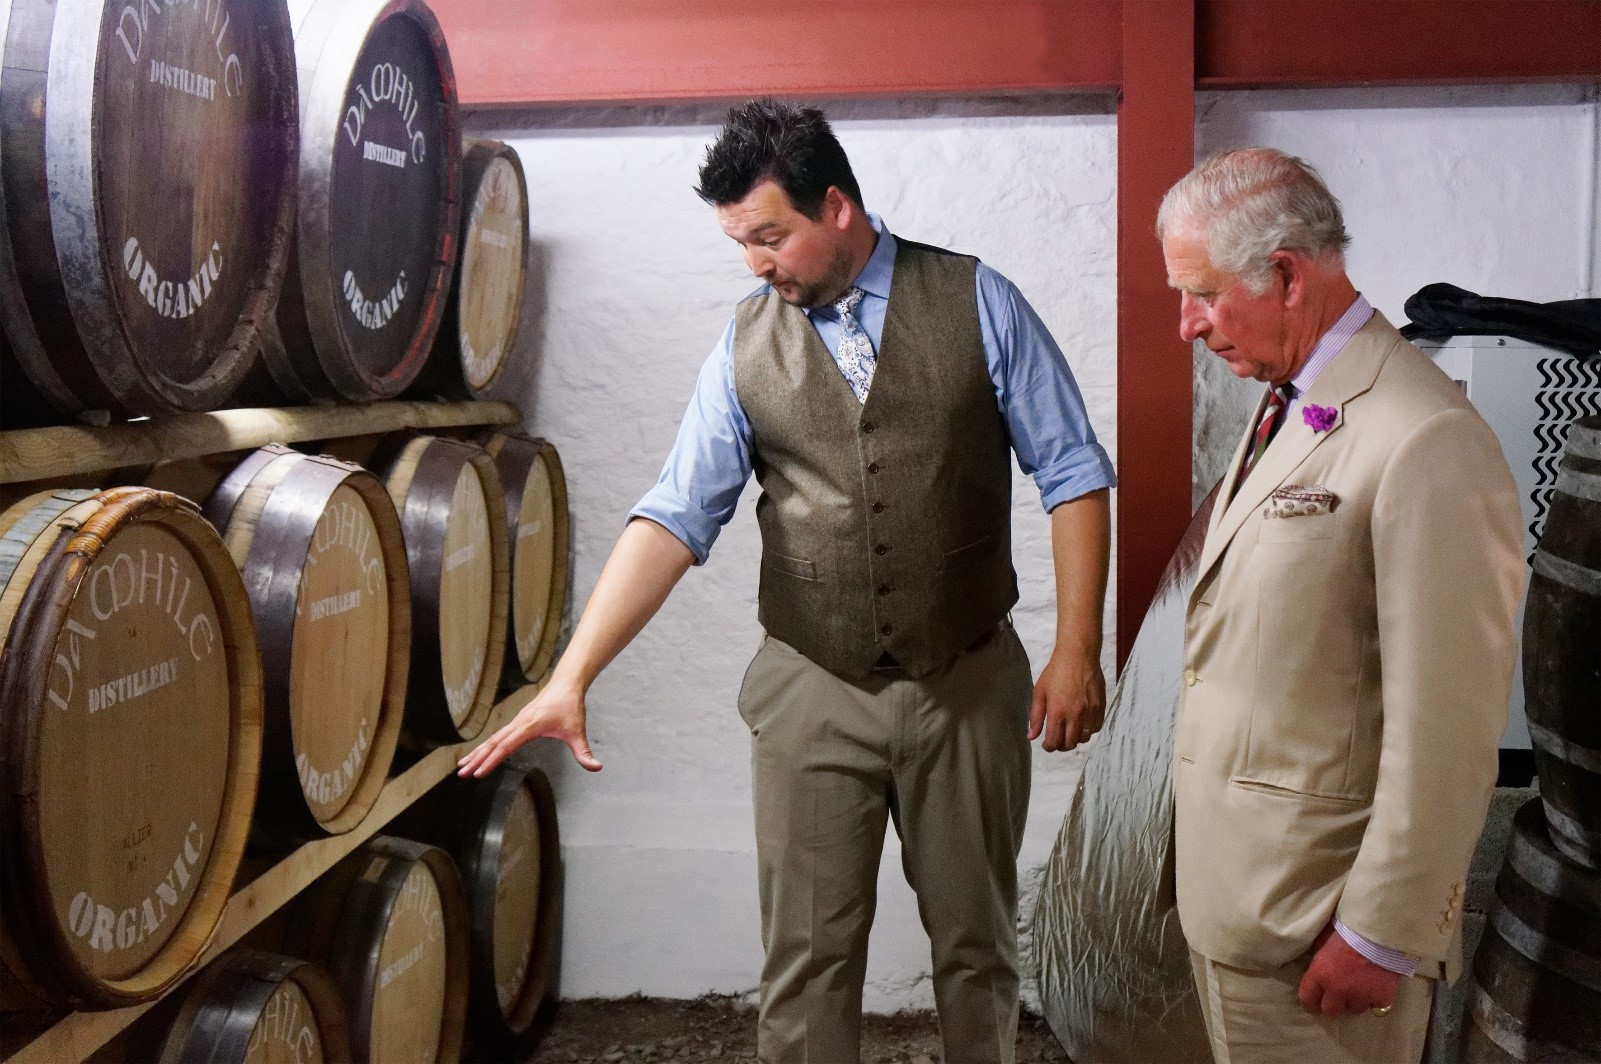 John-James Savage-Onstwedder showing Prince Charles the various casks of organic Welsh whisky in the bonded warehouse at Da Mhile Distillery, Llandysul